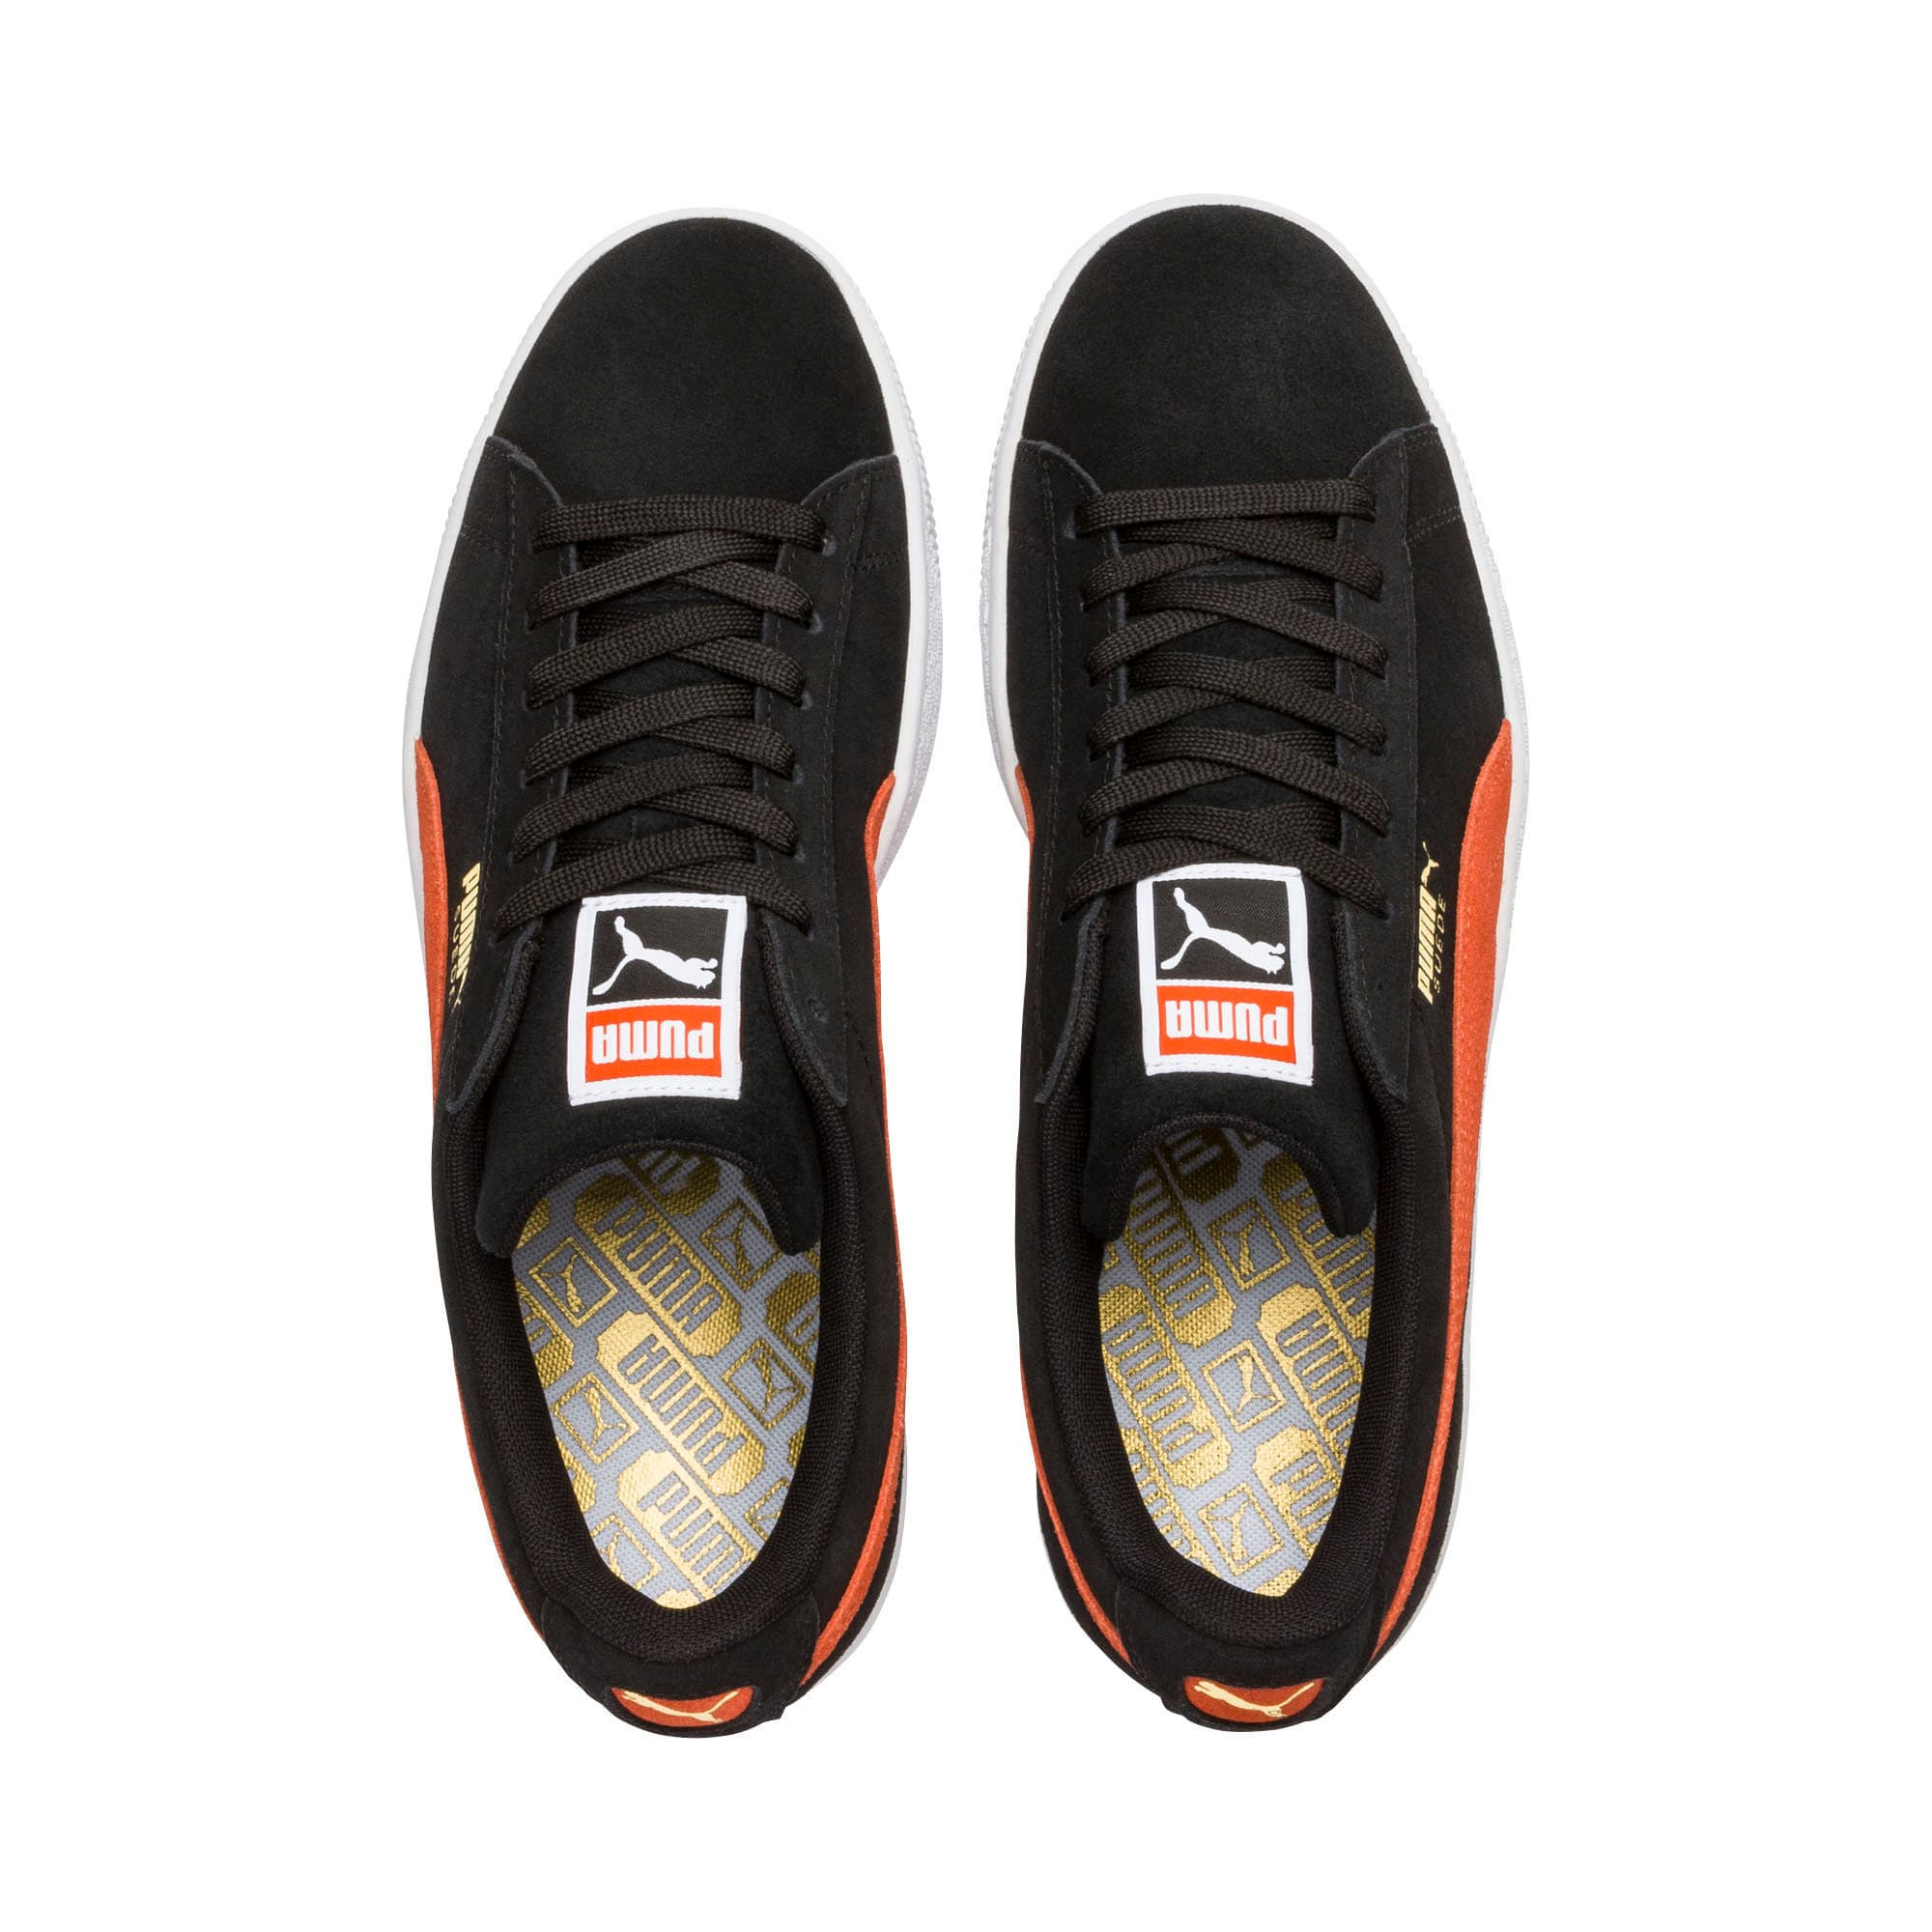 Thumbnail 6 of Suede Classic Trainers, Black-Firecracker- White, medium-IND